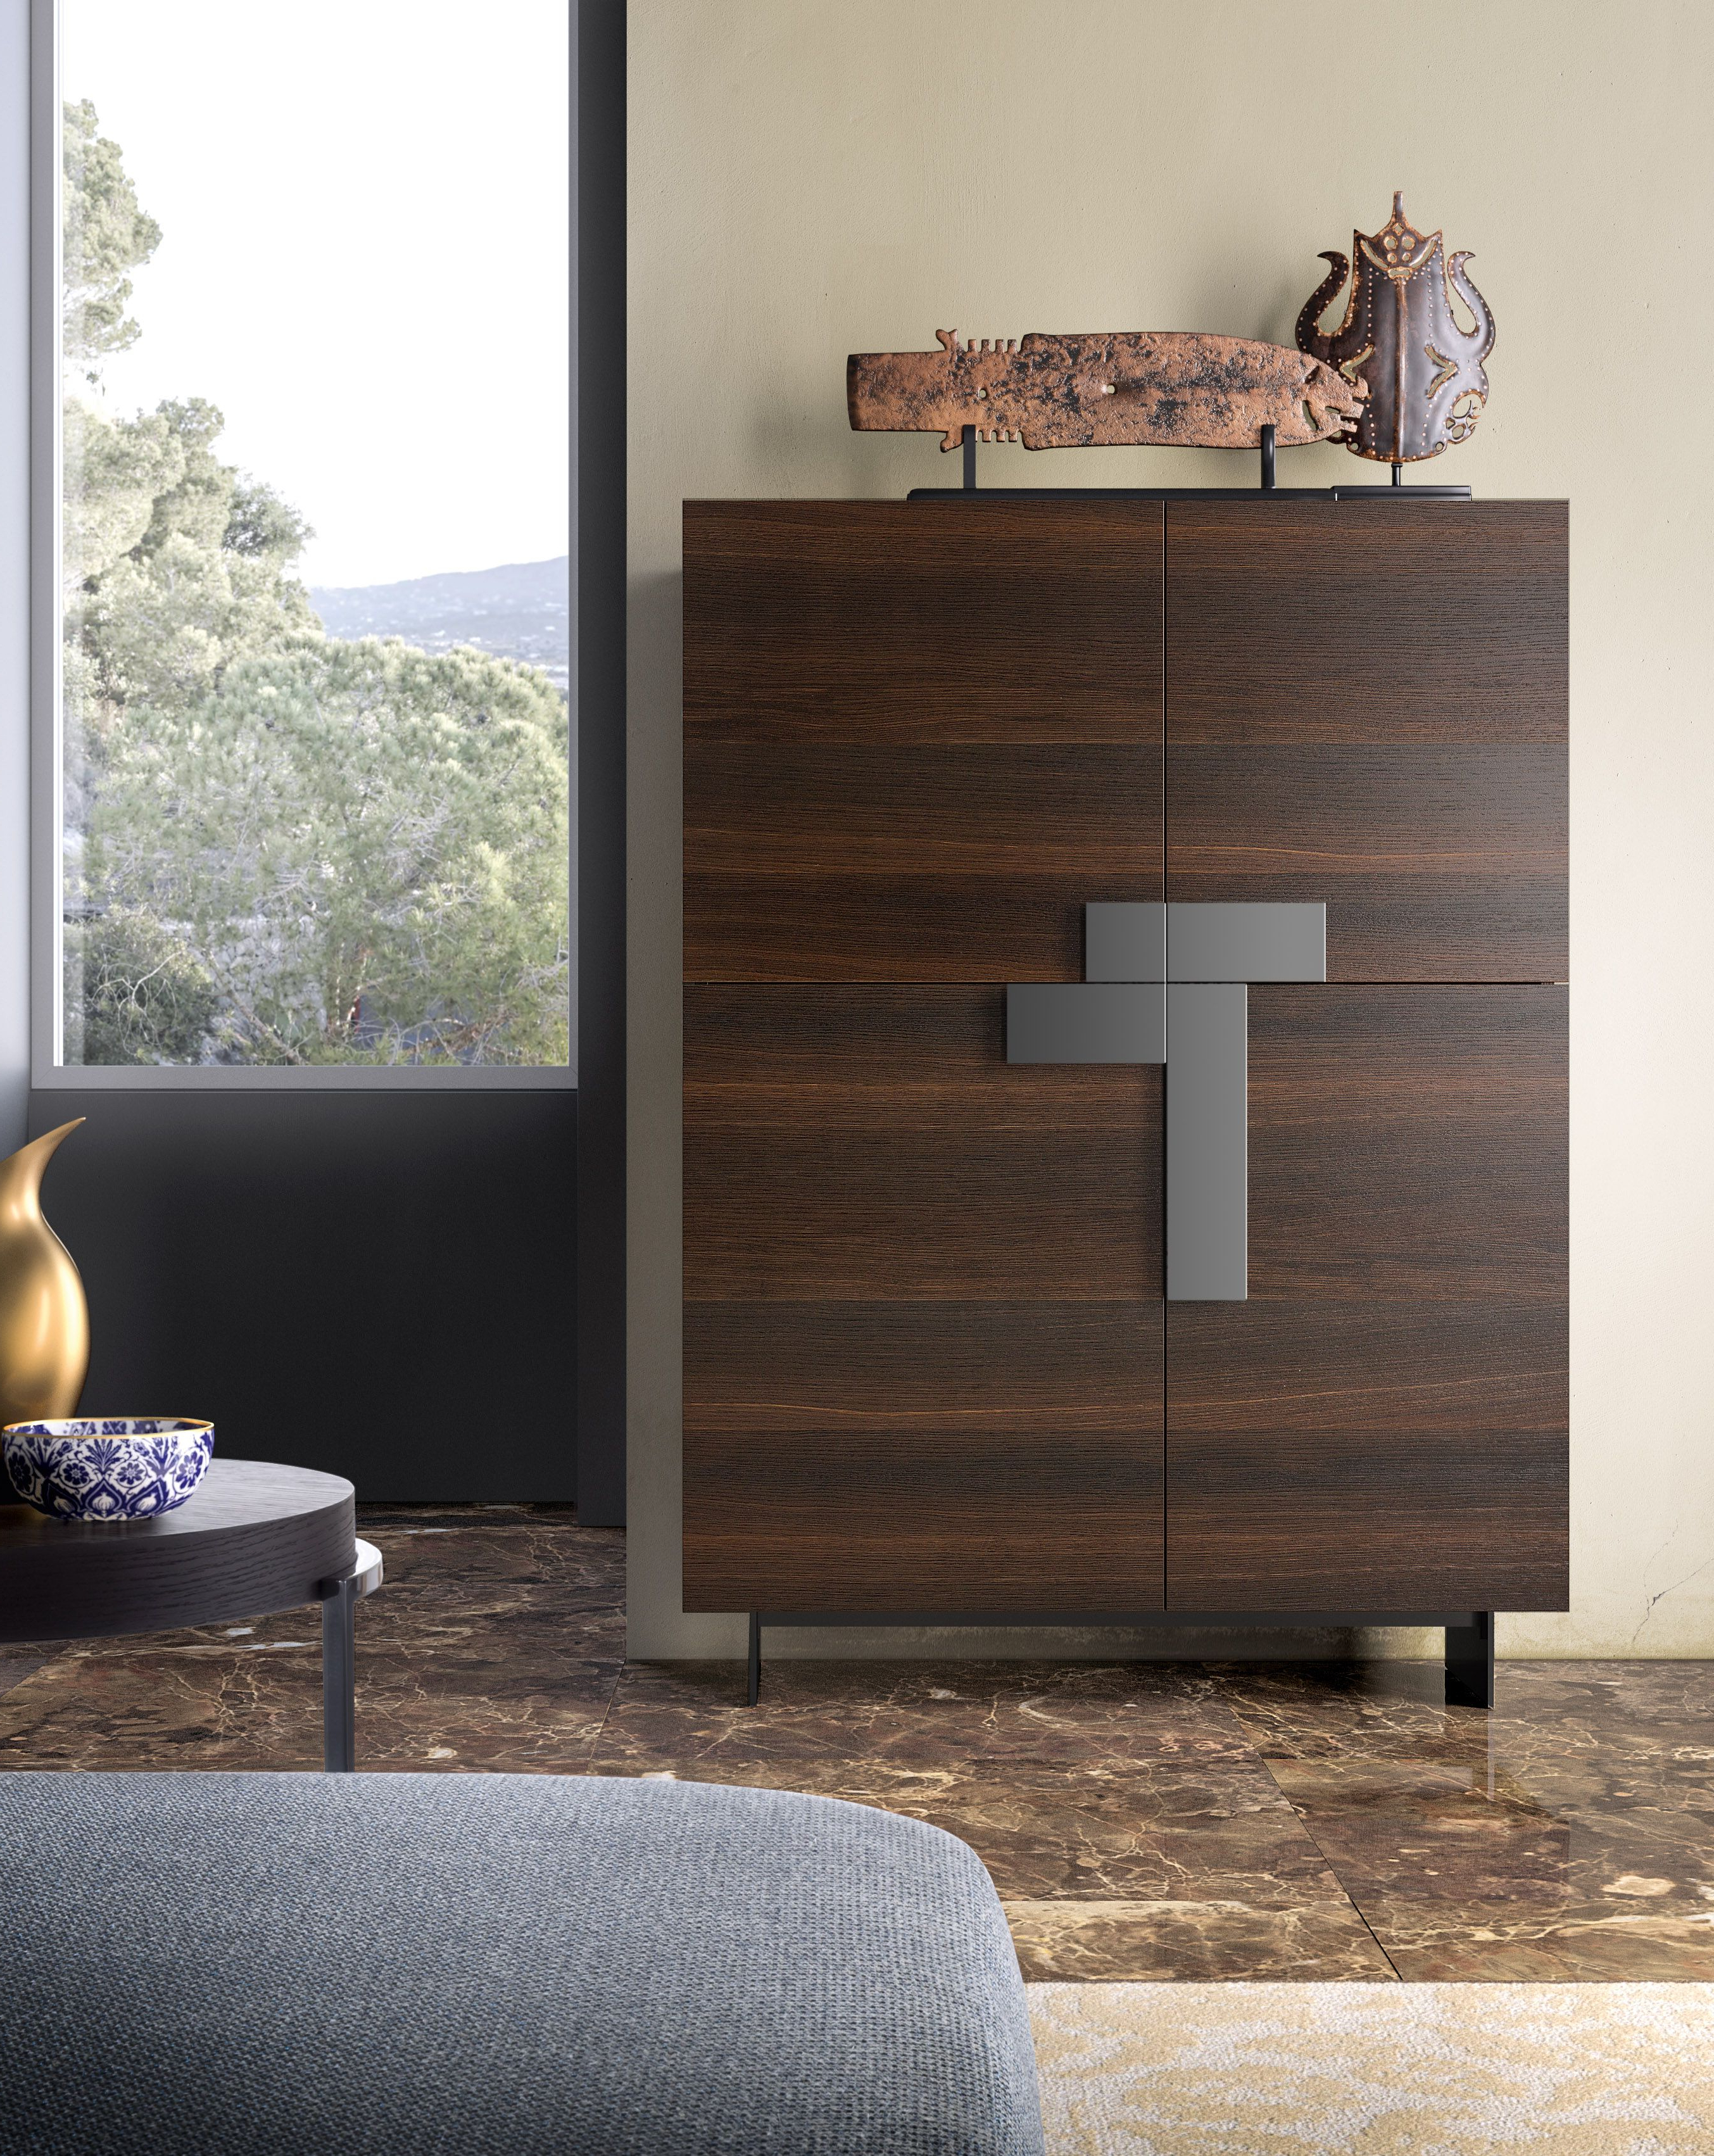 Most Recent Ginevra Sideboard With Burnt Oak Structure And Fronts, Titanium With Regard To Burnt Oak Wood Sideboards (View 2 of 20)